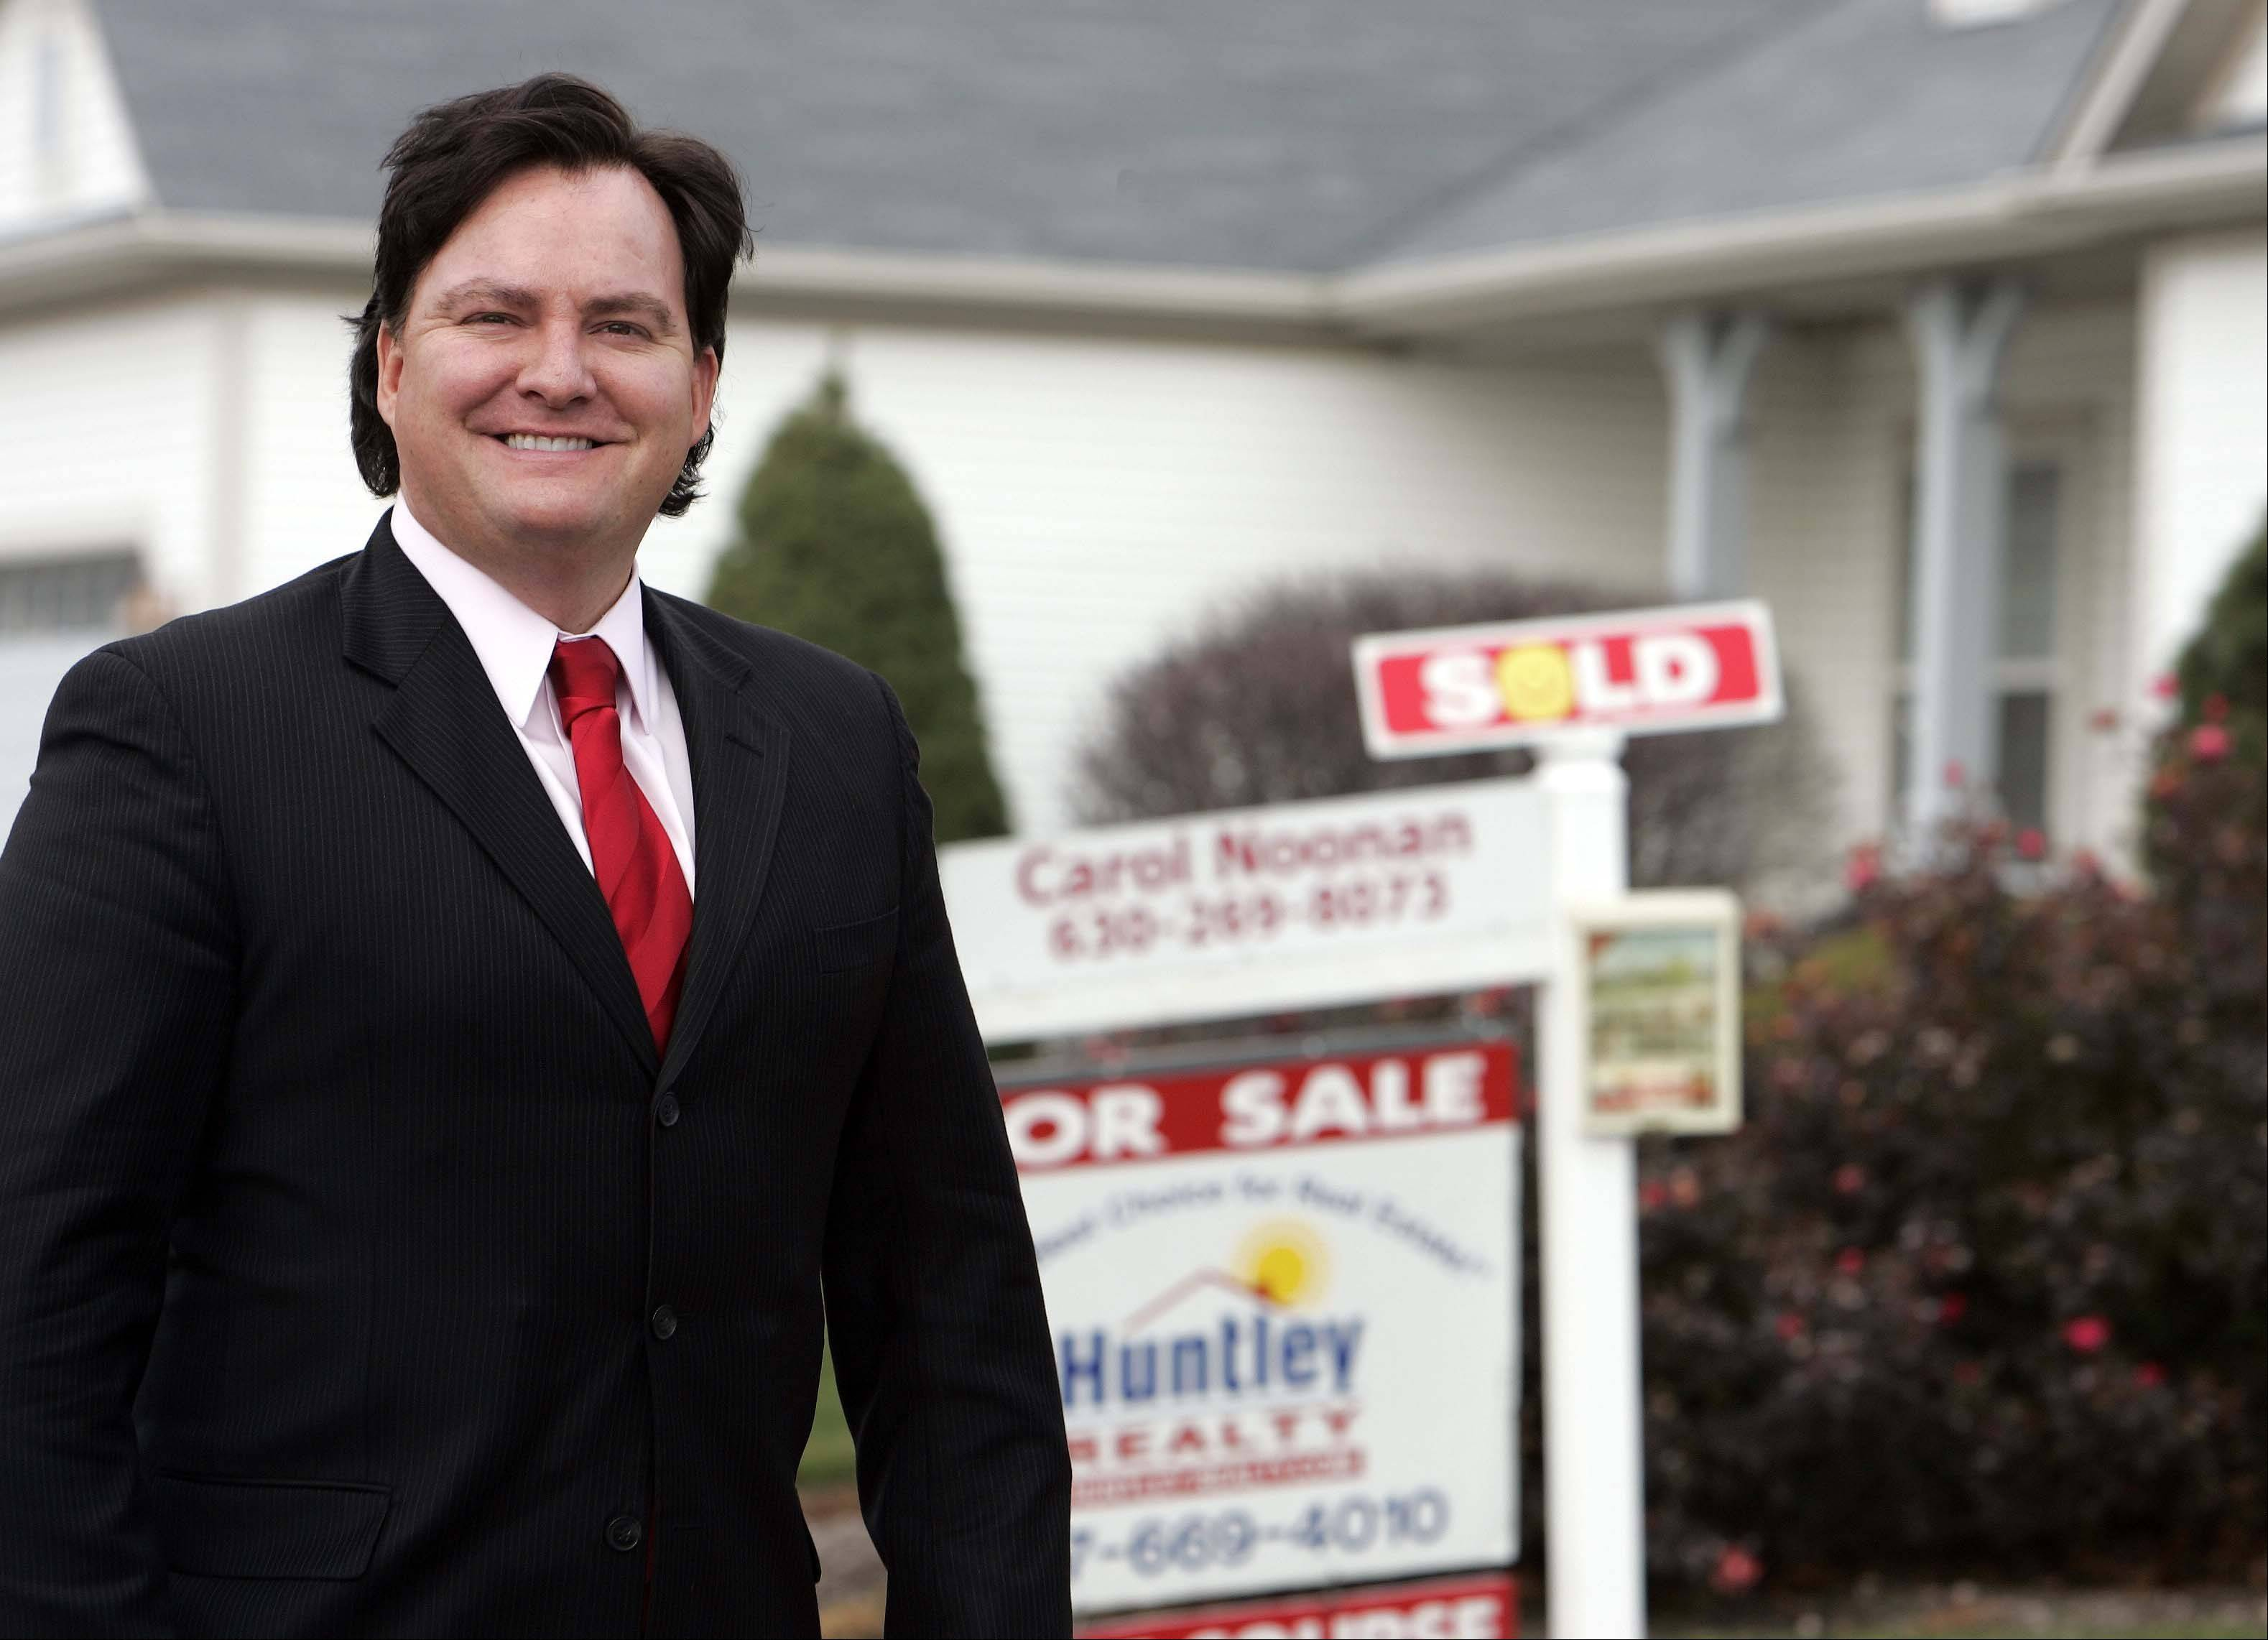 The large inventory of unsold homes in the Chicago region is shrinking, said Tom Hall, owner of Huntley Realty.